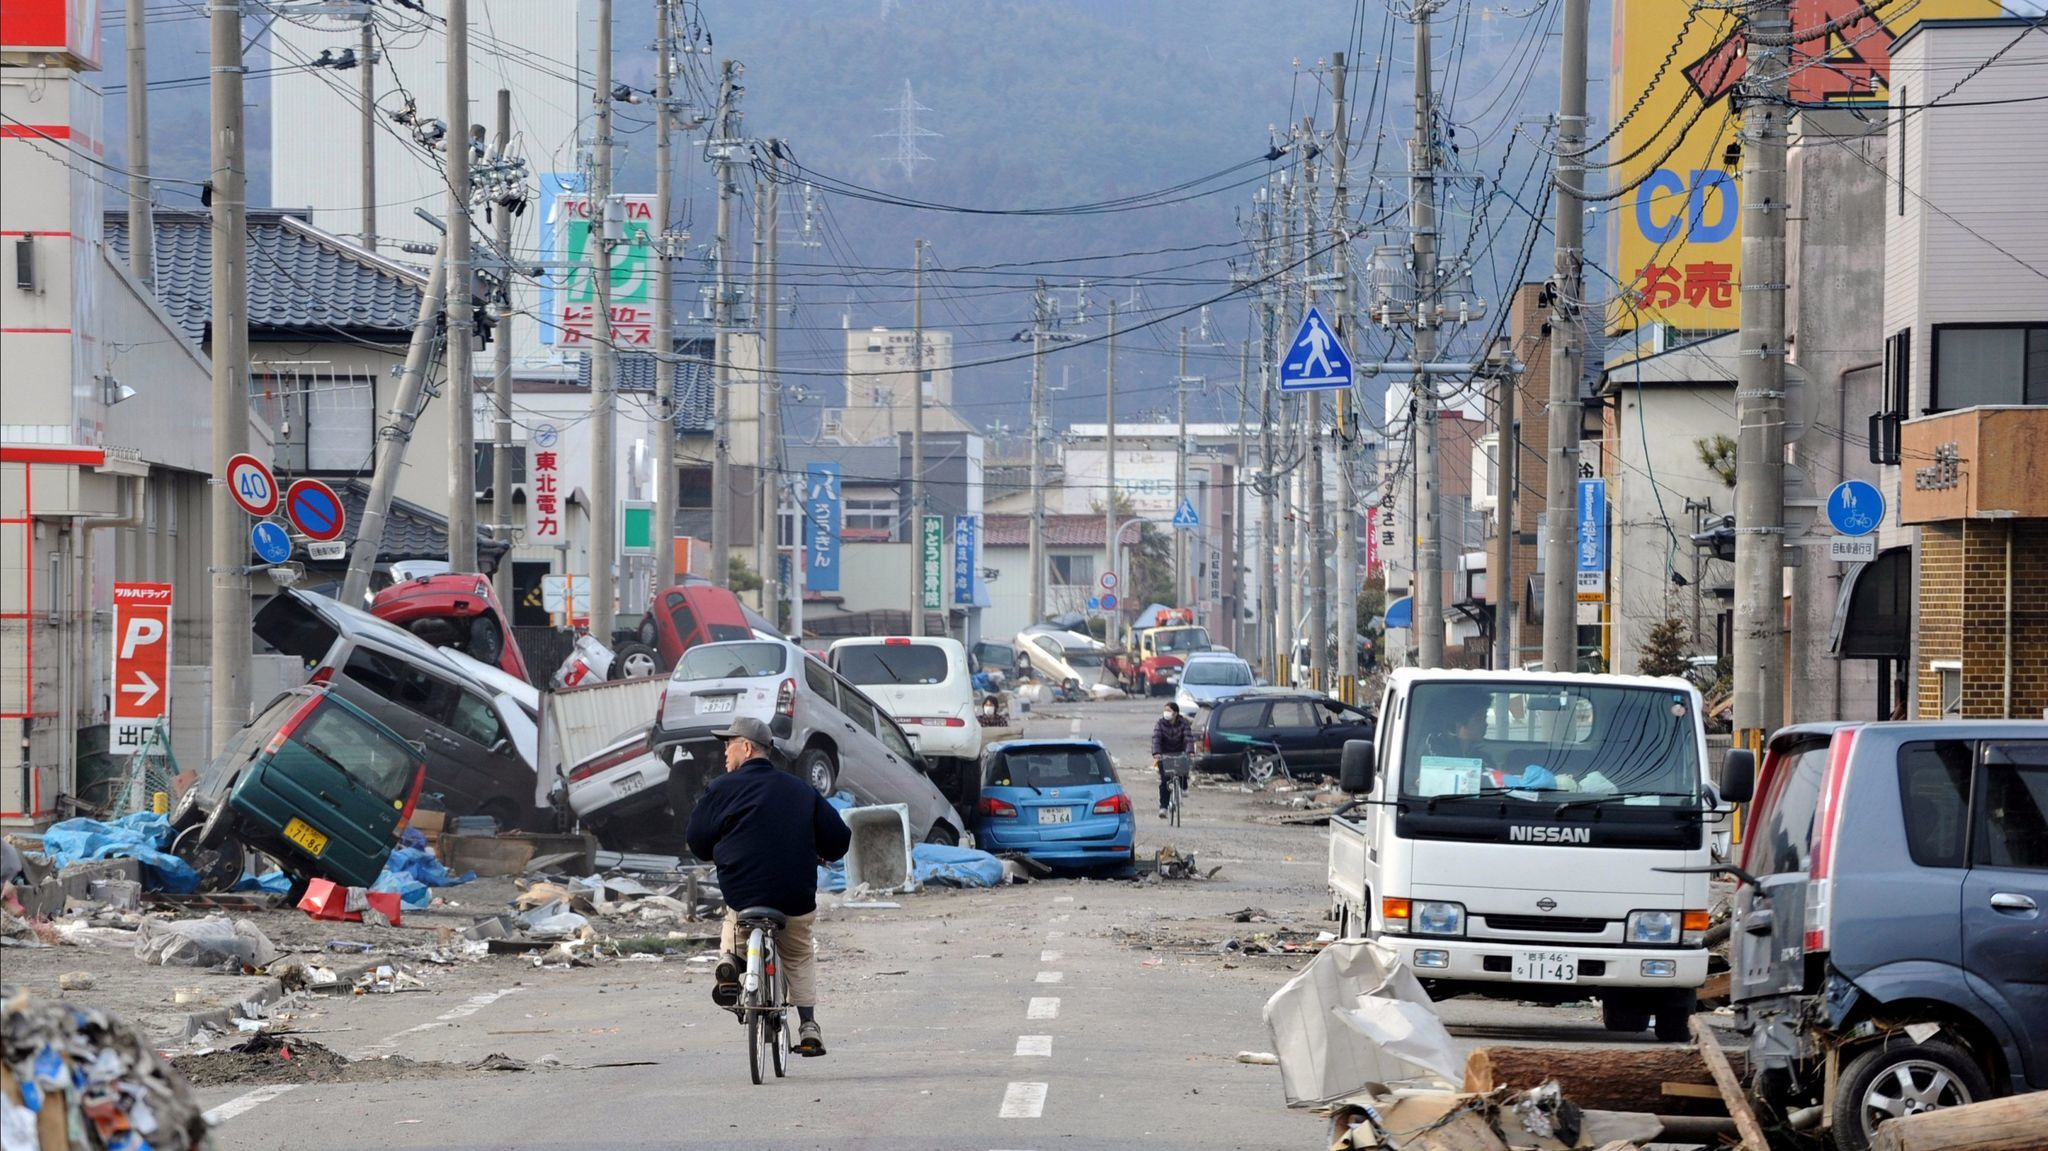 Magnitude 9: A street in Ofunato, in Japan's Iwate prefecture, after an earthquake struck off the coast in 2011, triggering a tsunami.